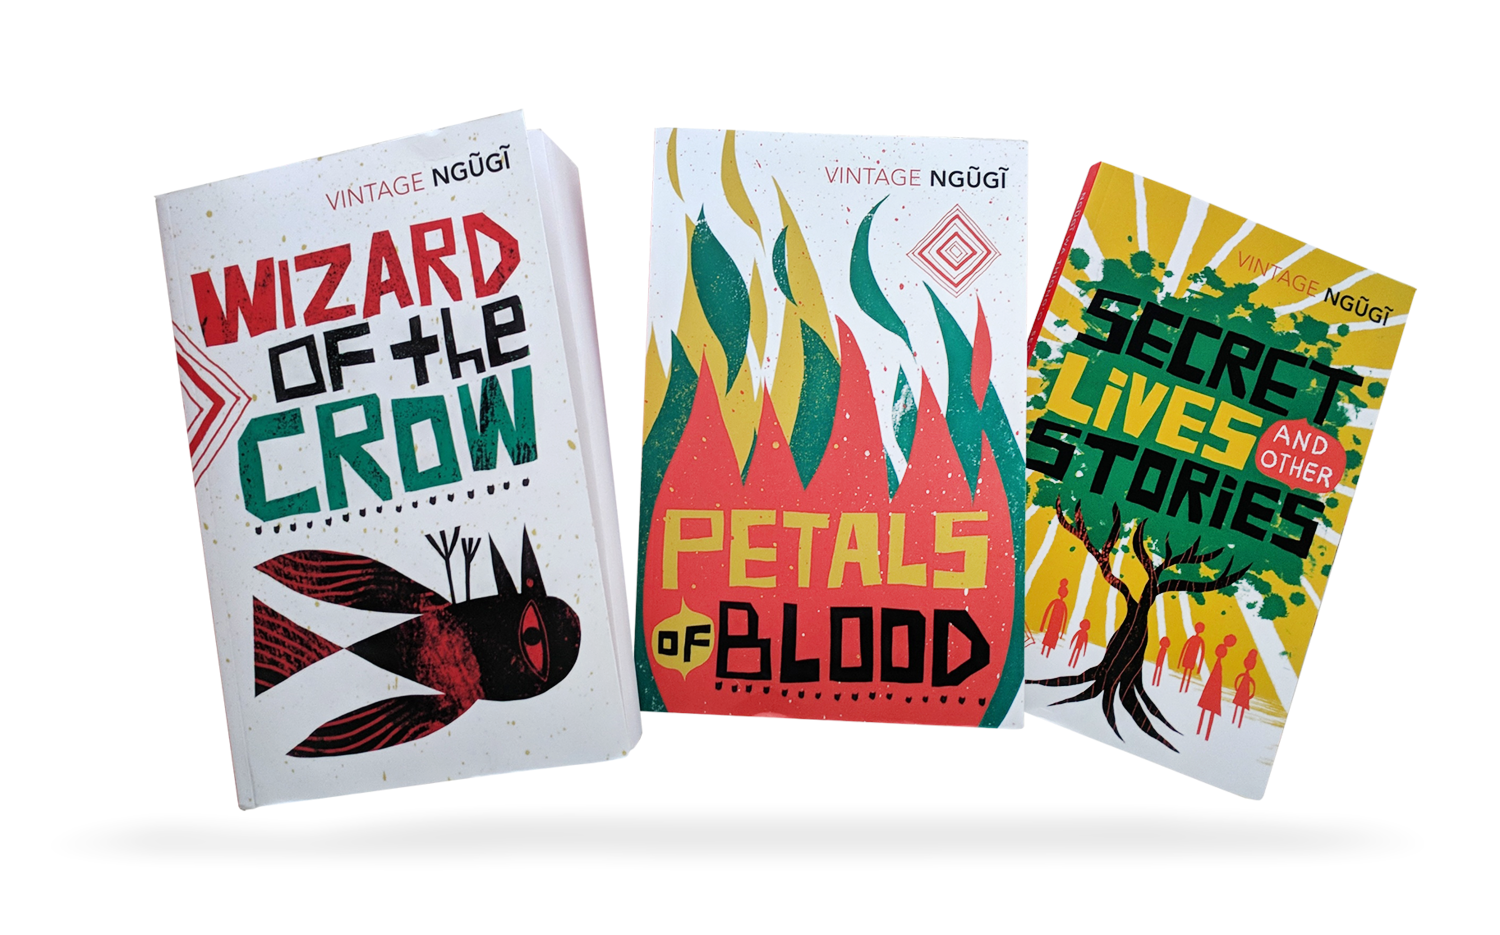 Hand Lettering and illustrations for Ngugi wa Thiong'o book covers; Wizard of the Crow, Petals of Blood, Secret Lives and Other Stories